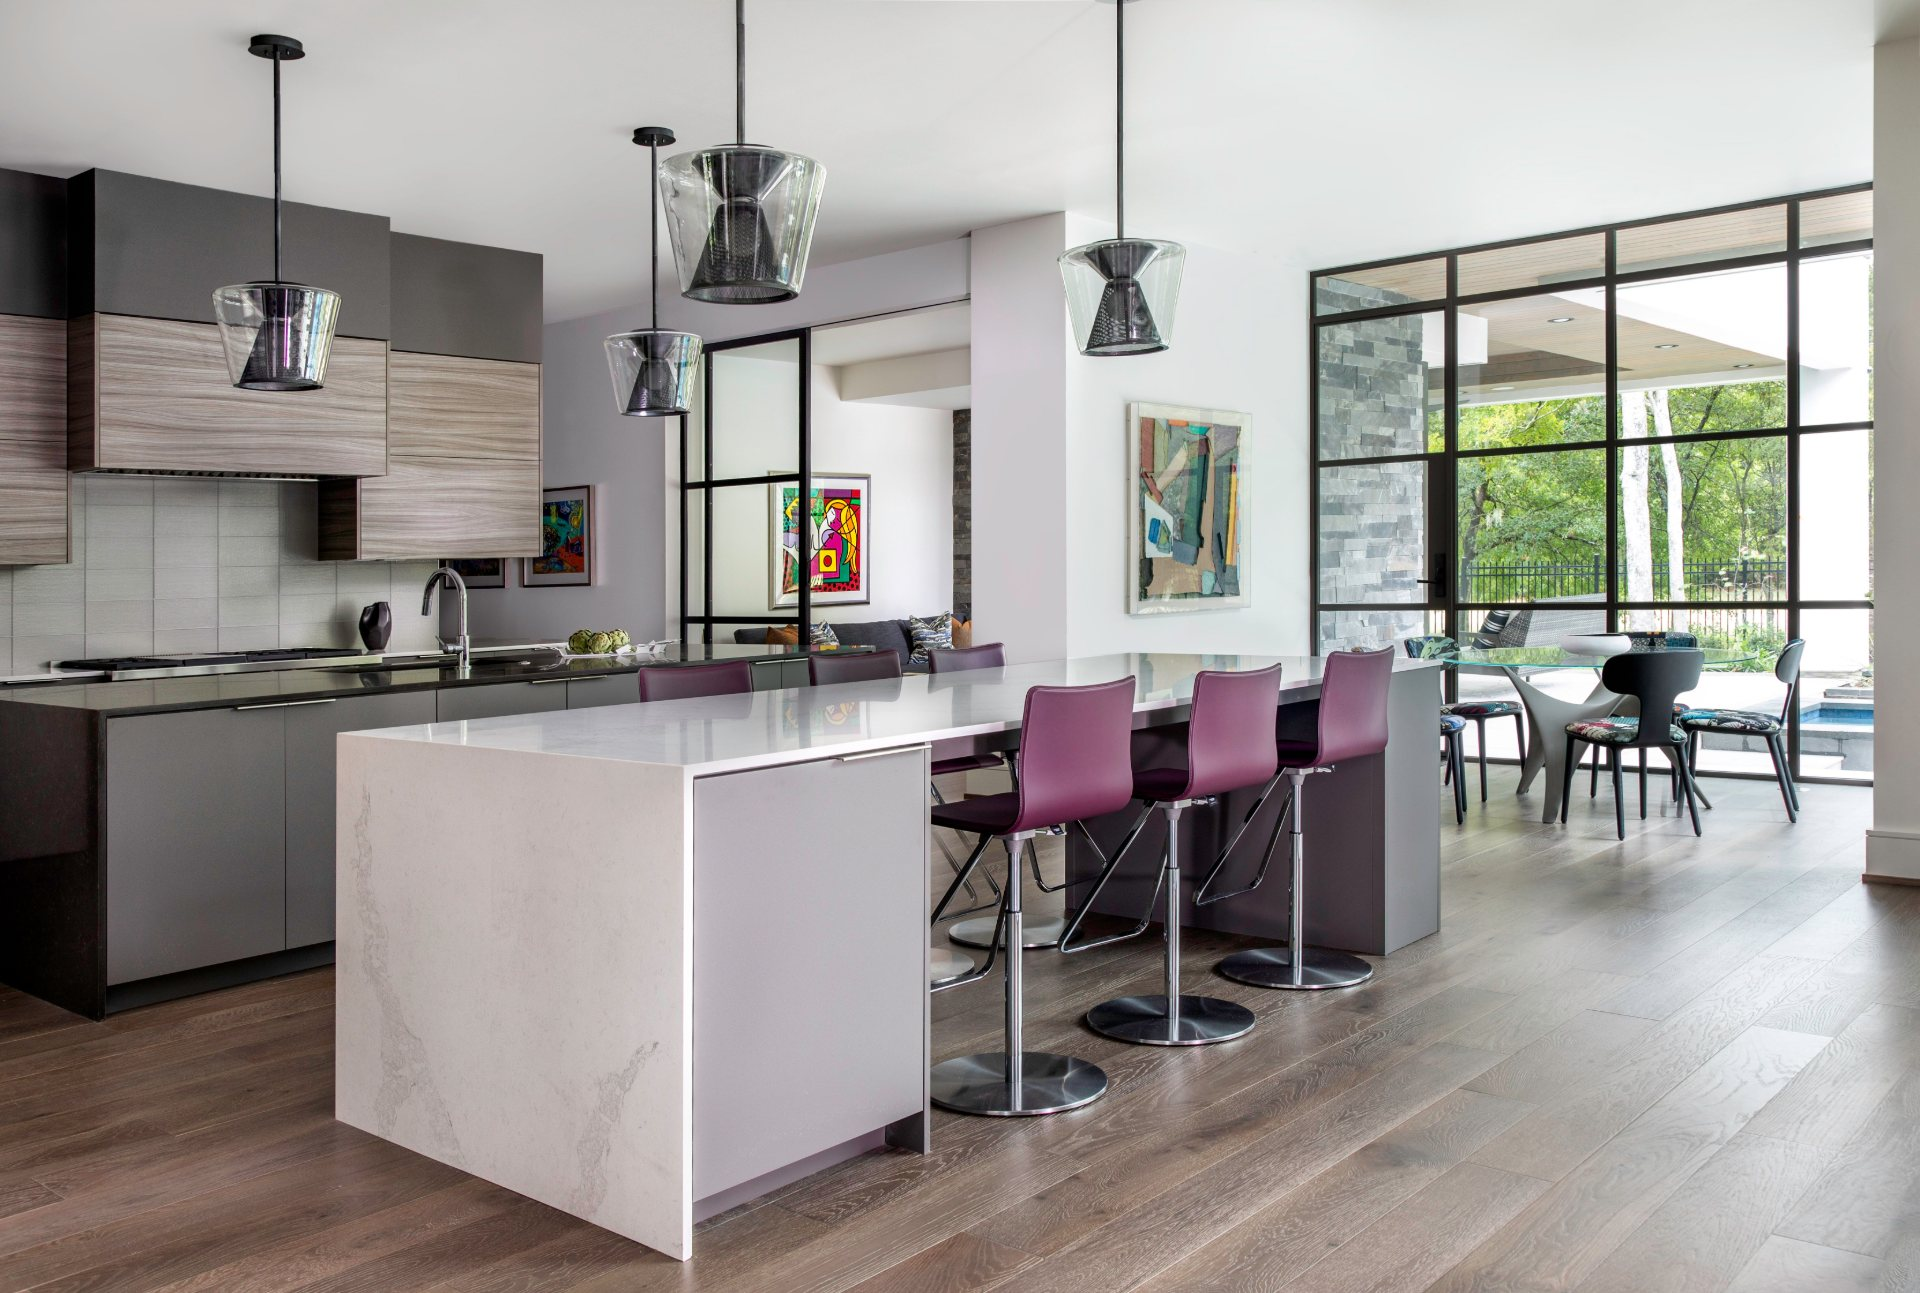 Modern kitchen with plum bar stools, two marble islands and elegant light fixtures